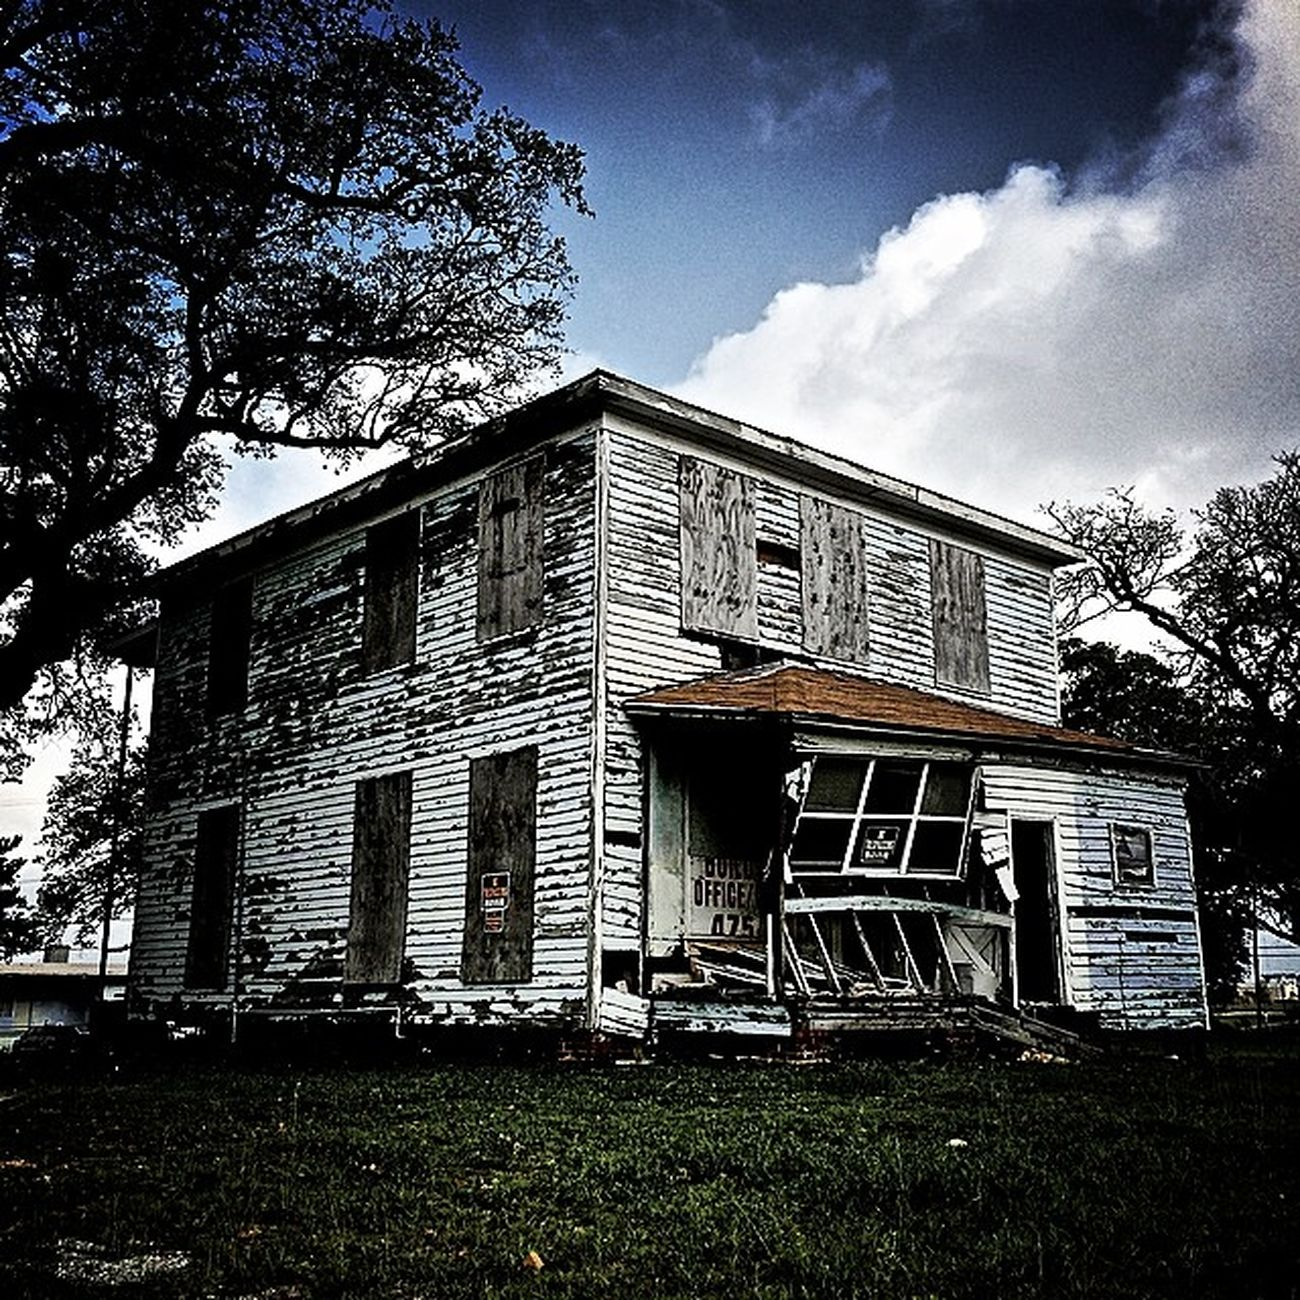 Rebels_united Abandonedhousetour Shutterbug_collective Outcastamerica_rural Trb_members1 Trb_blue Rustic_wonders OutcastAmerica Trb_love_shack_baby Rsa_rural_grunge Rsa_abandoned_houses Tv_abandoned